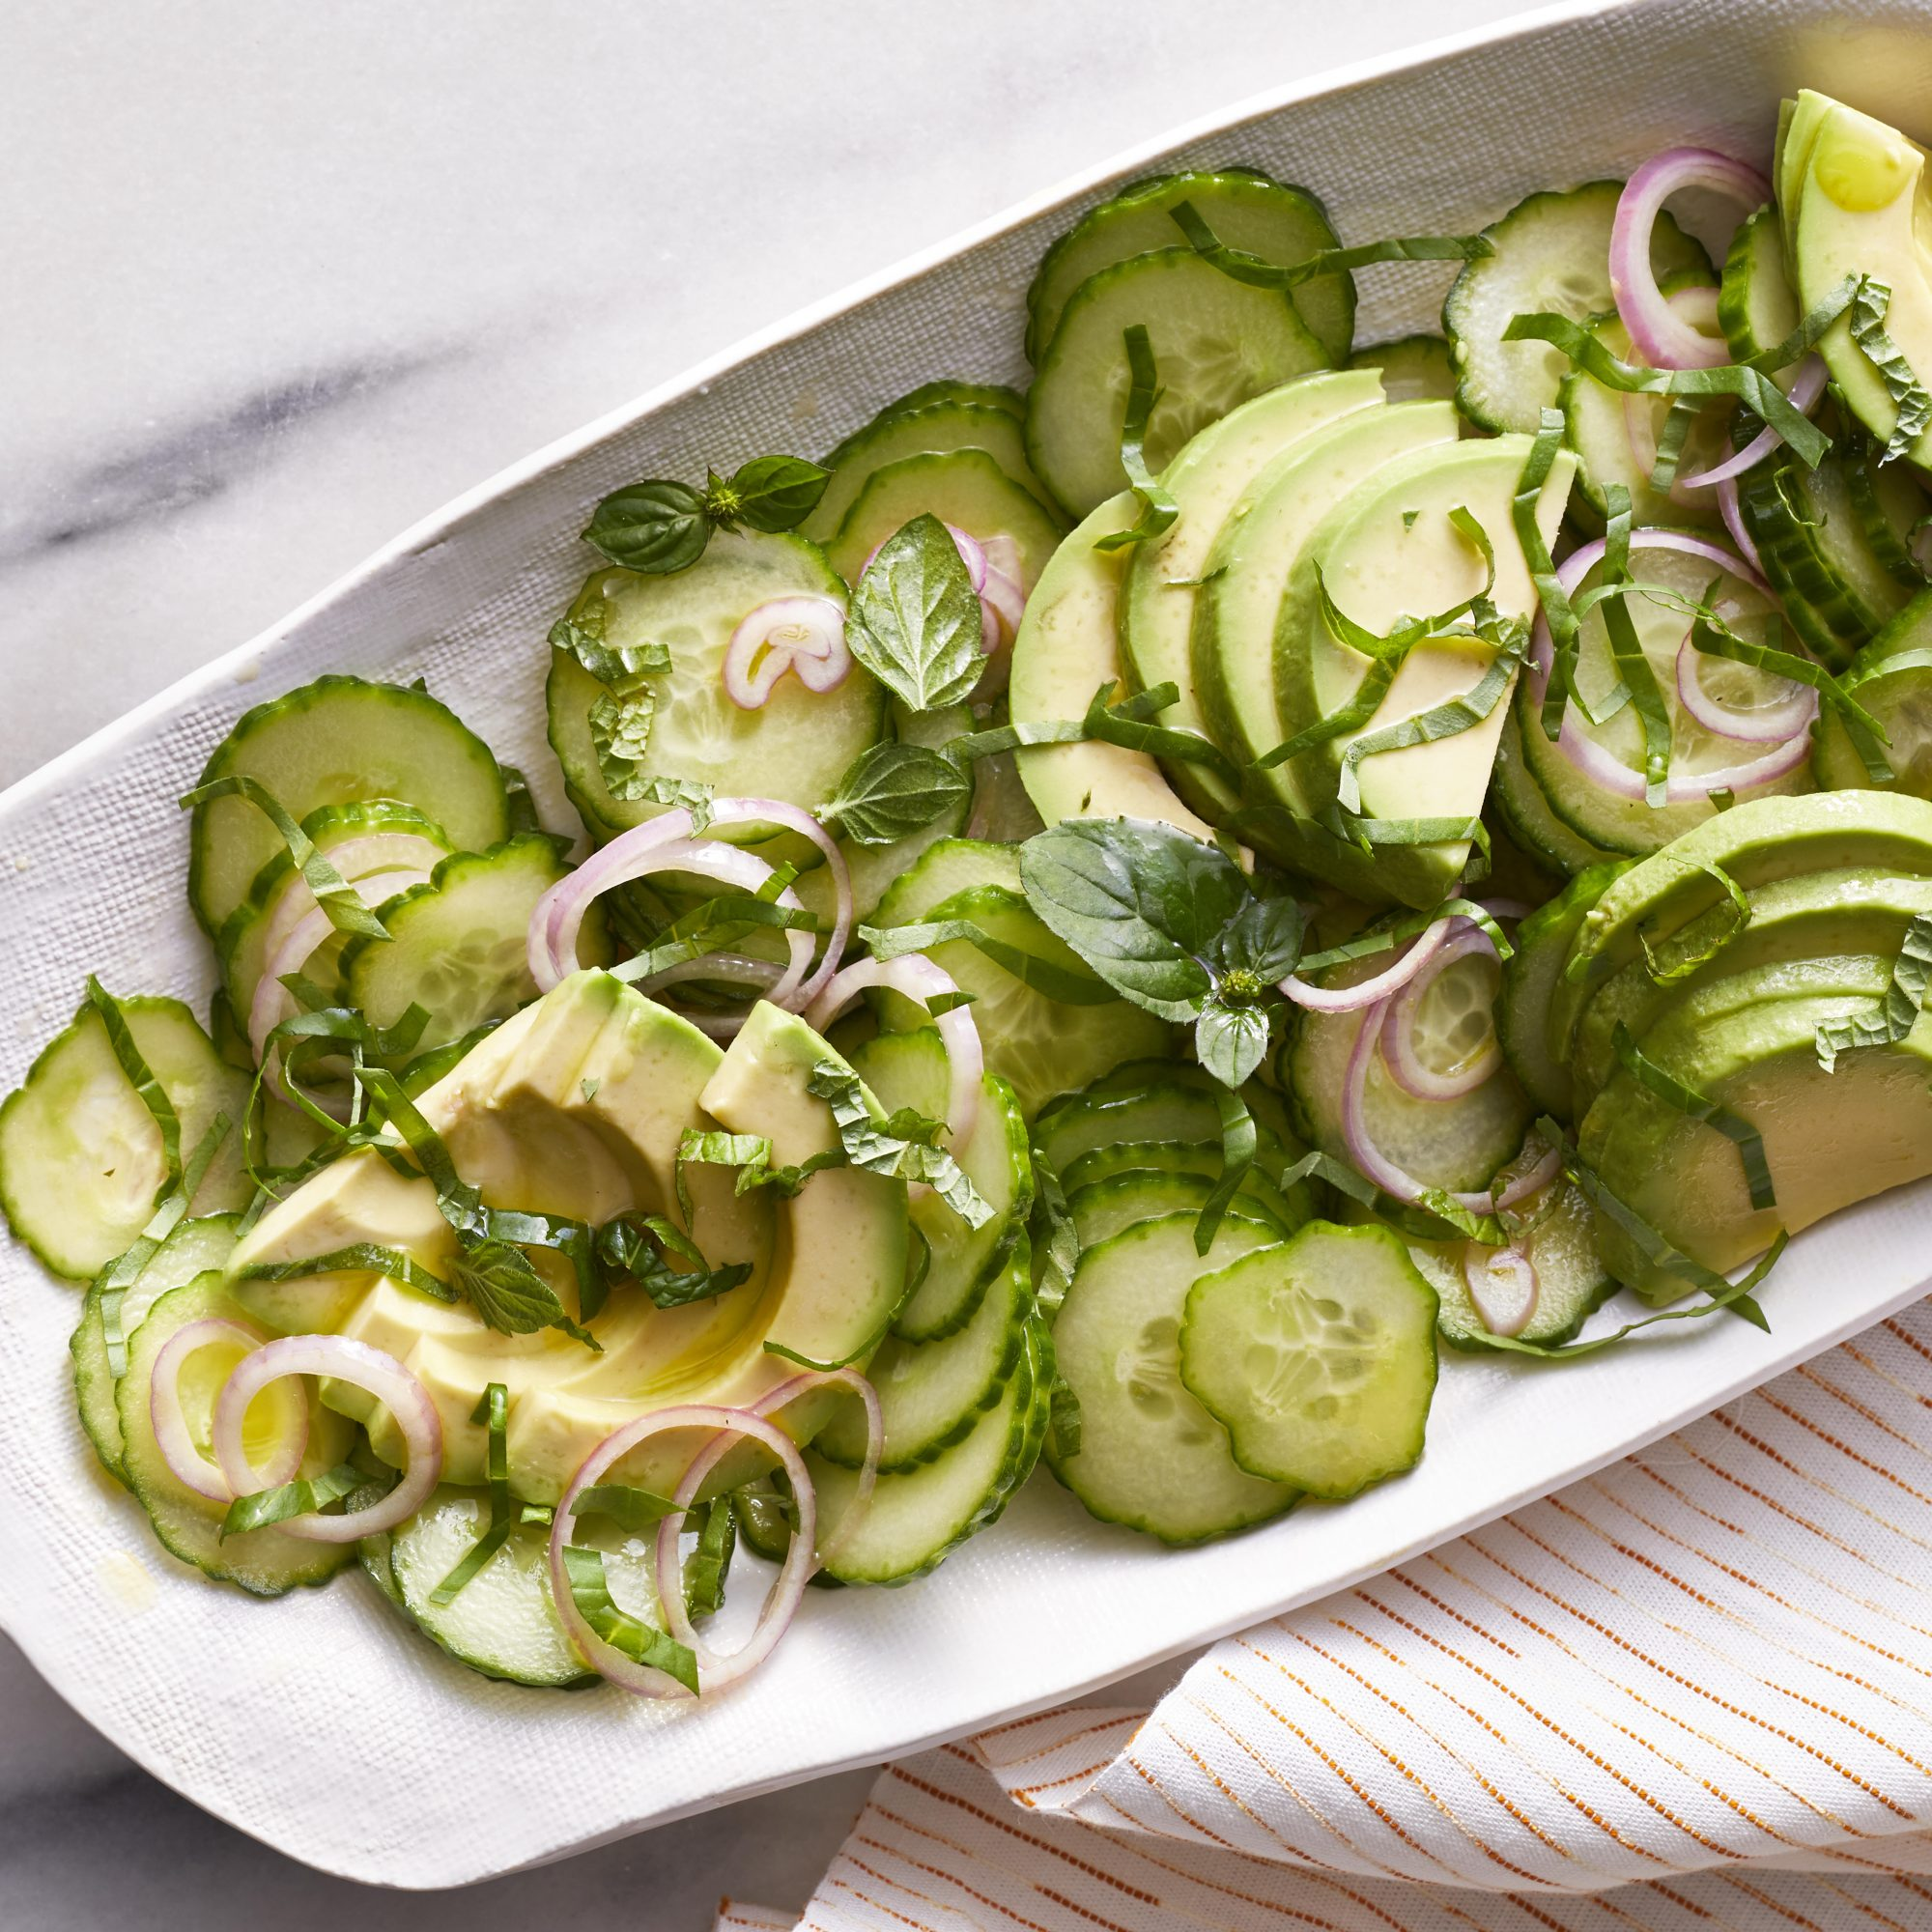 a white platter with cucumbers and avocados